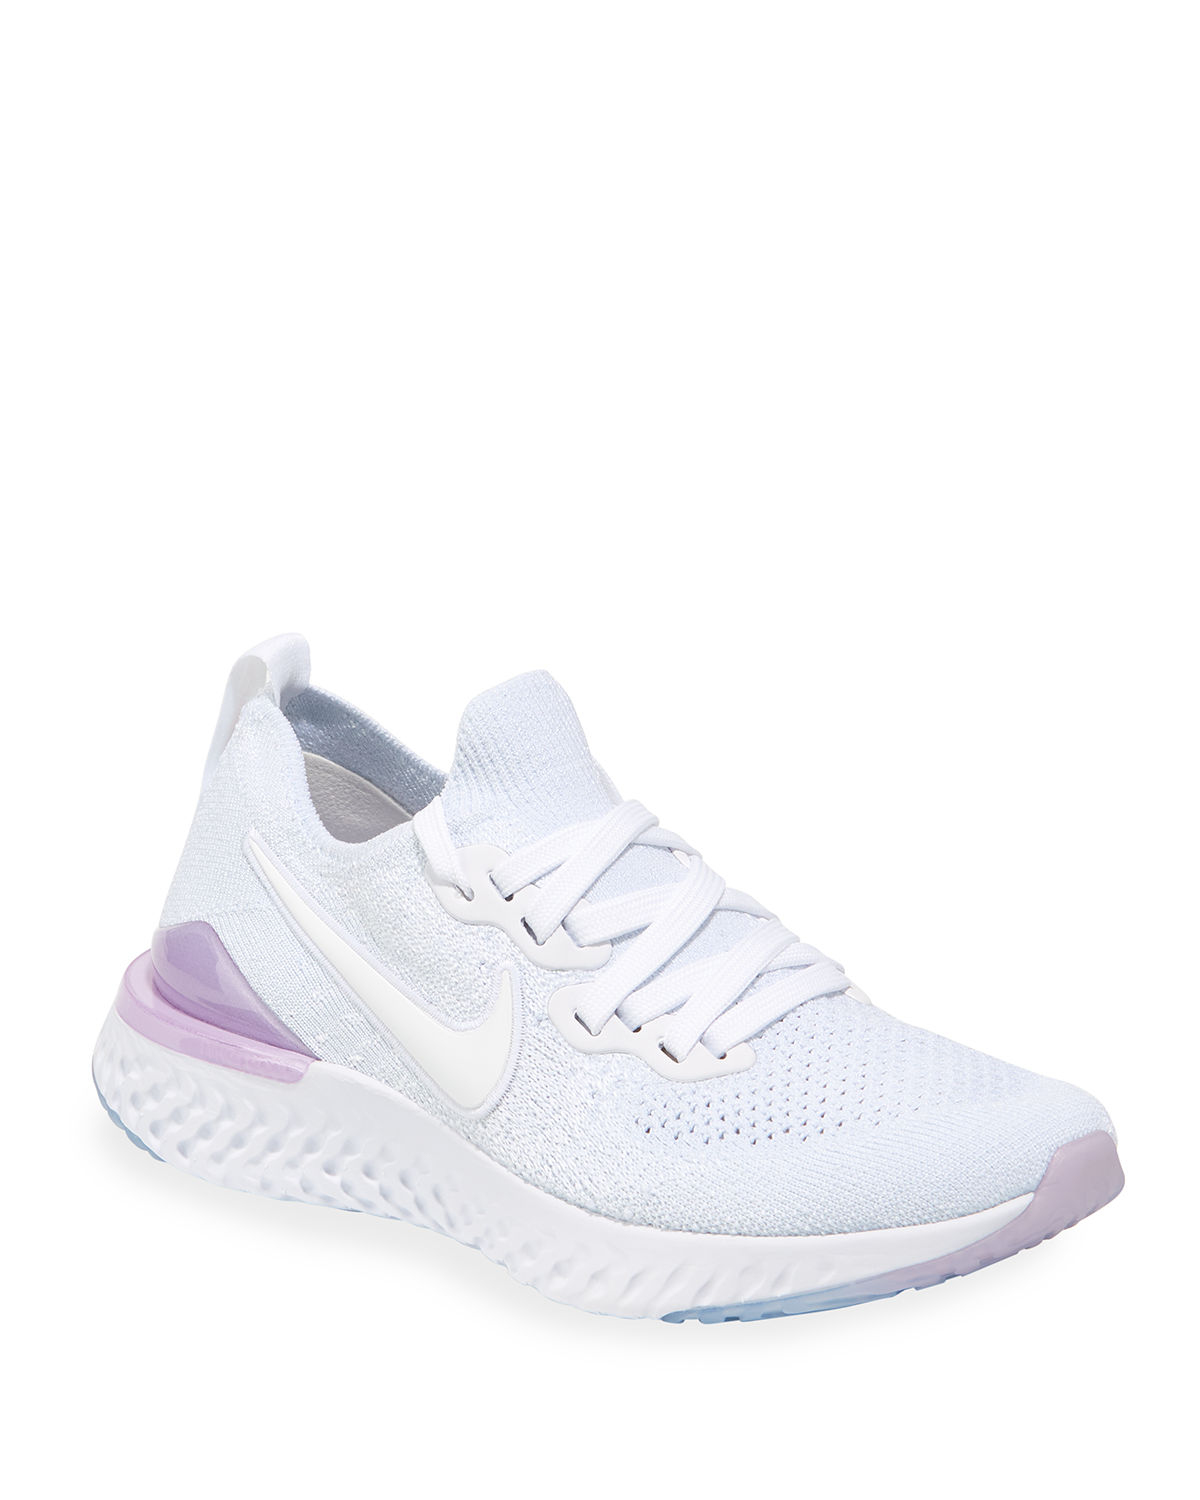 4f92229bab2a Nike Epic React Flyknit 2 Running Sneakers